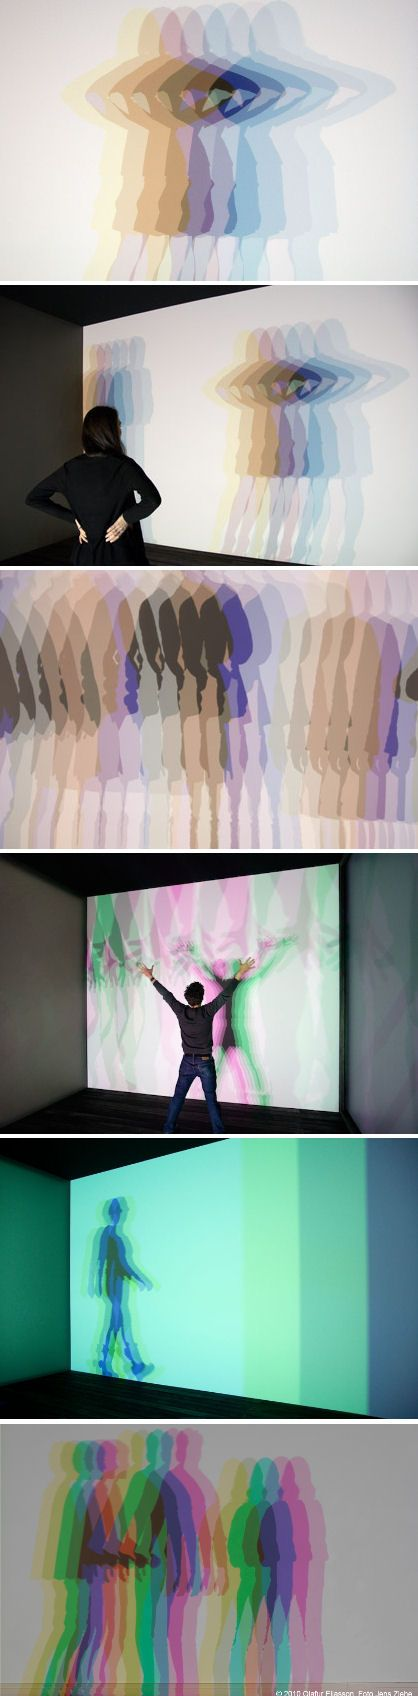 Olafur Eliasson, Multiple shadow house, 2010. When a body enters the space and… …